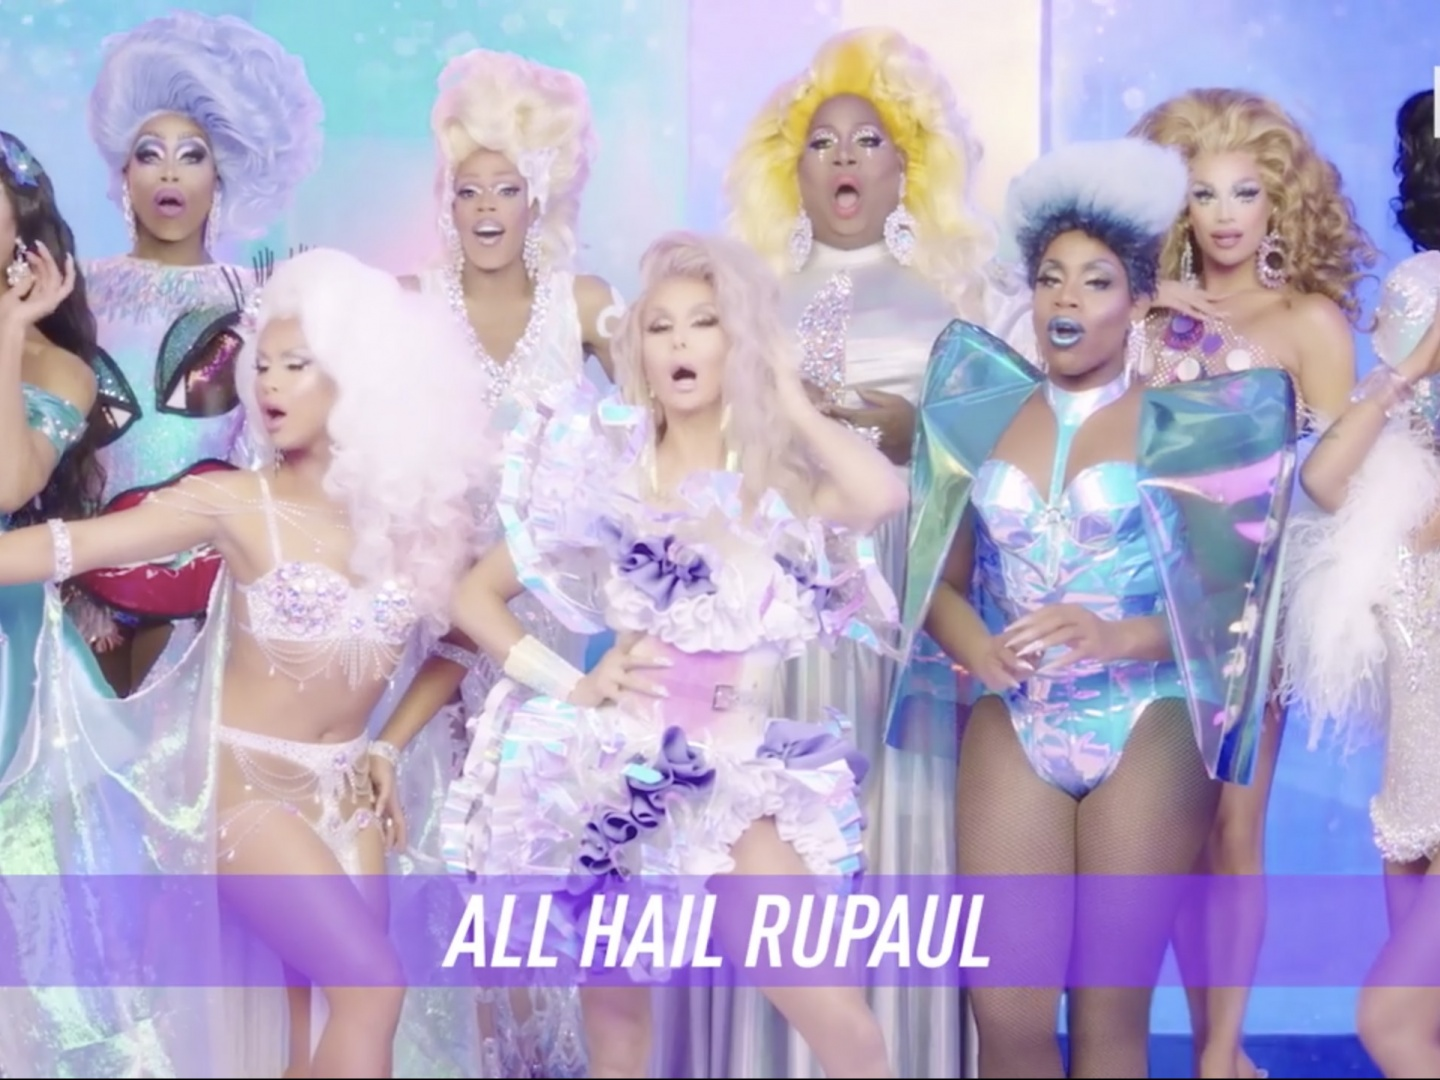 RuPaul's Drag Race All Stars Season 4 - Music Video Thumbnail